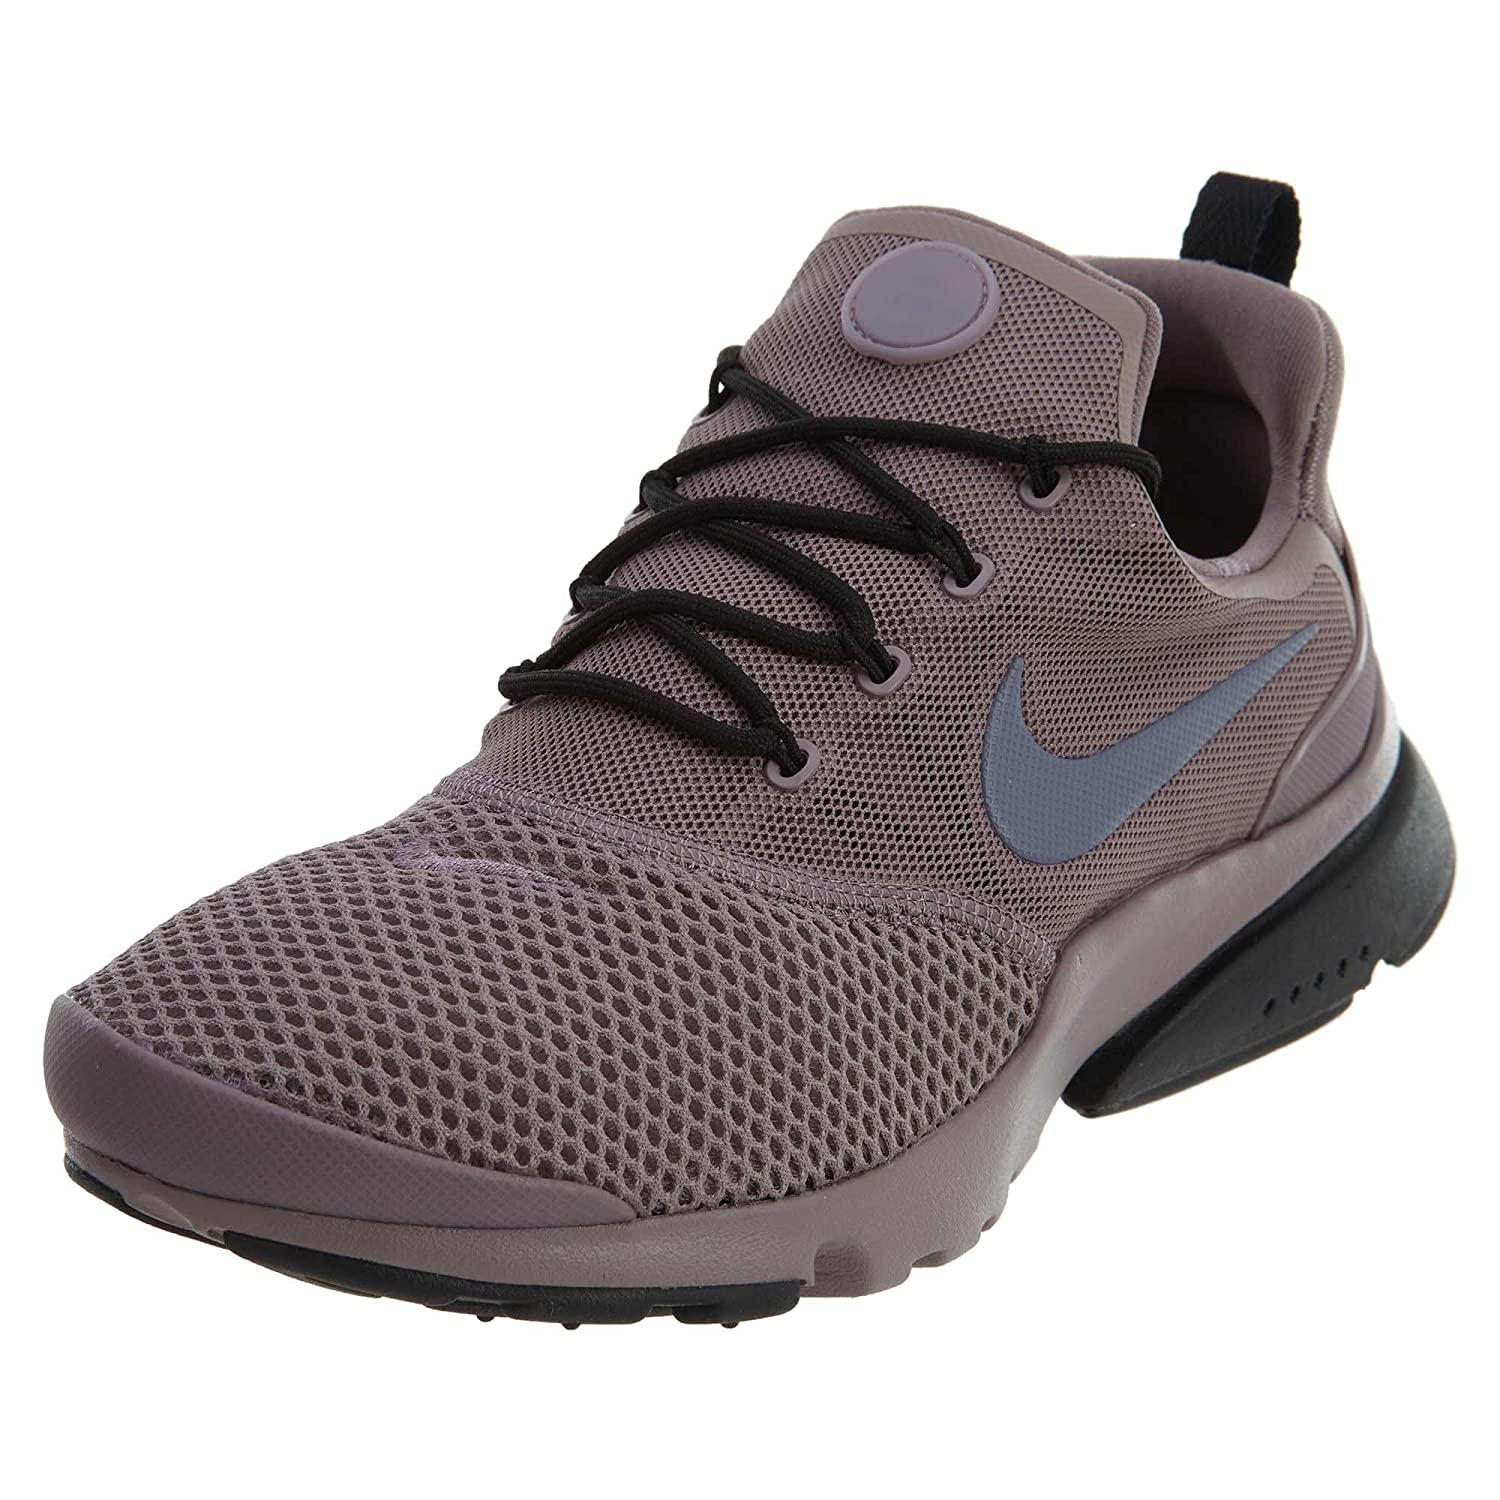 NIKE Presto Fly Womens Running Shoes B0767Z95YP 6.5 B(M) US|Oatmeal